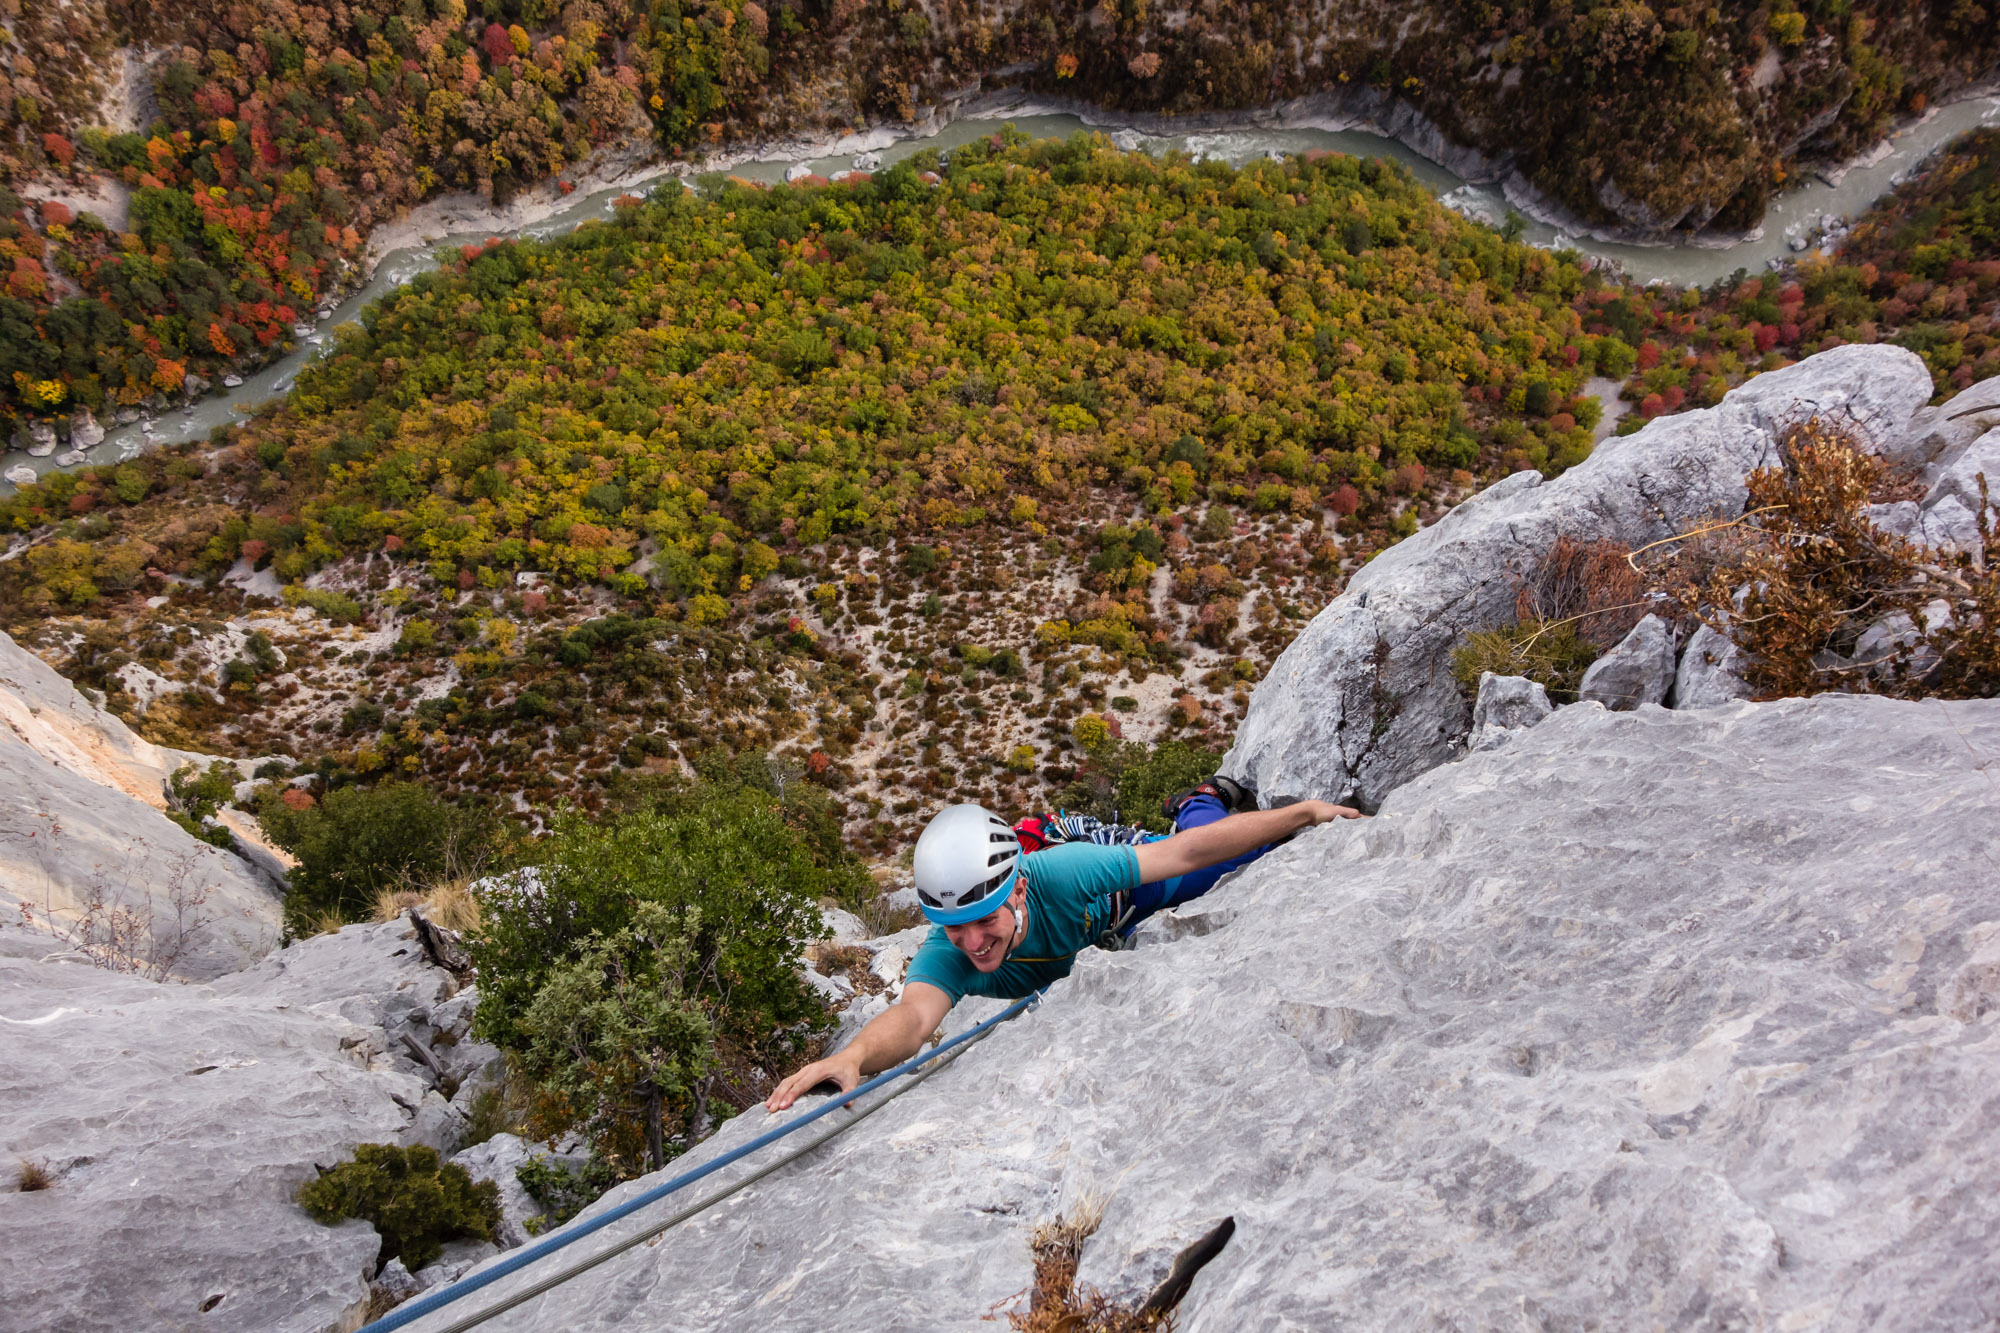 Andy on the final section of the superbly named Fini au Pipi